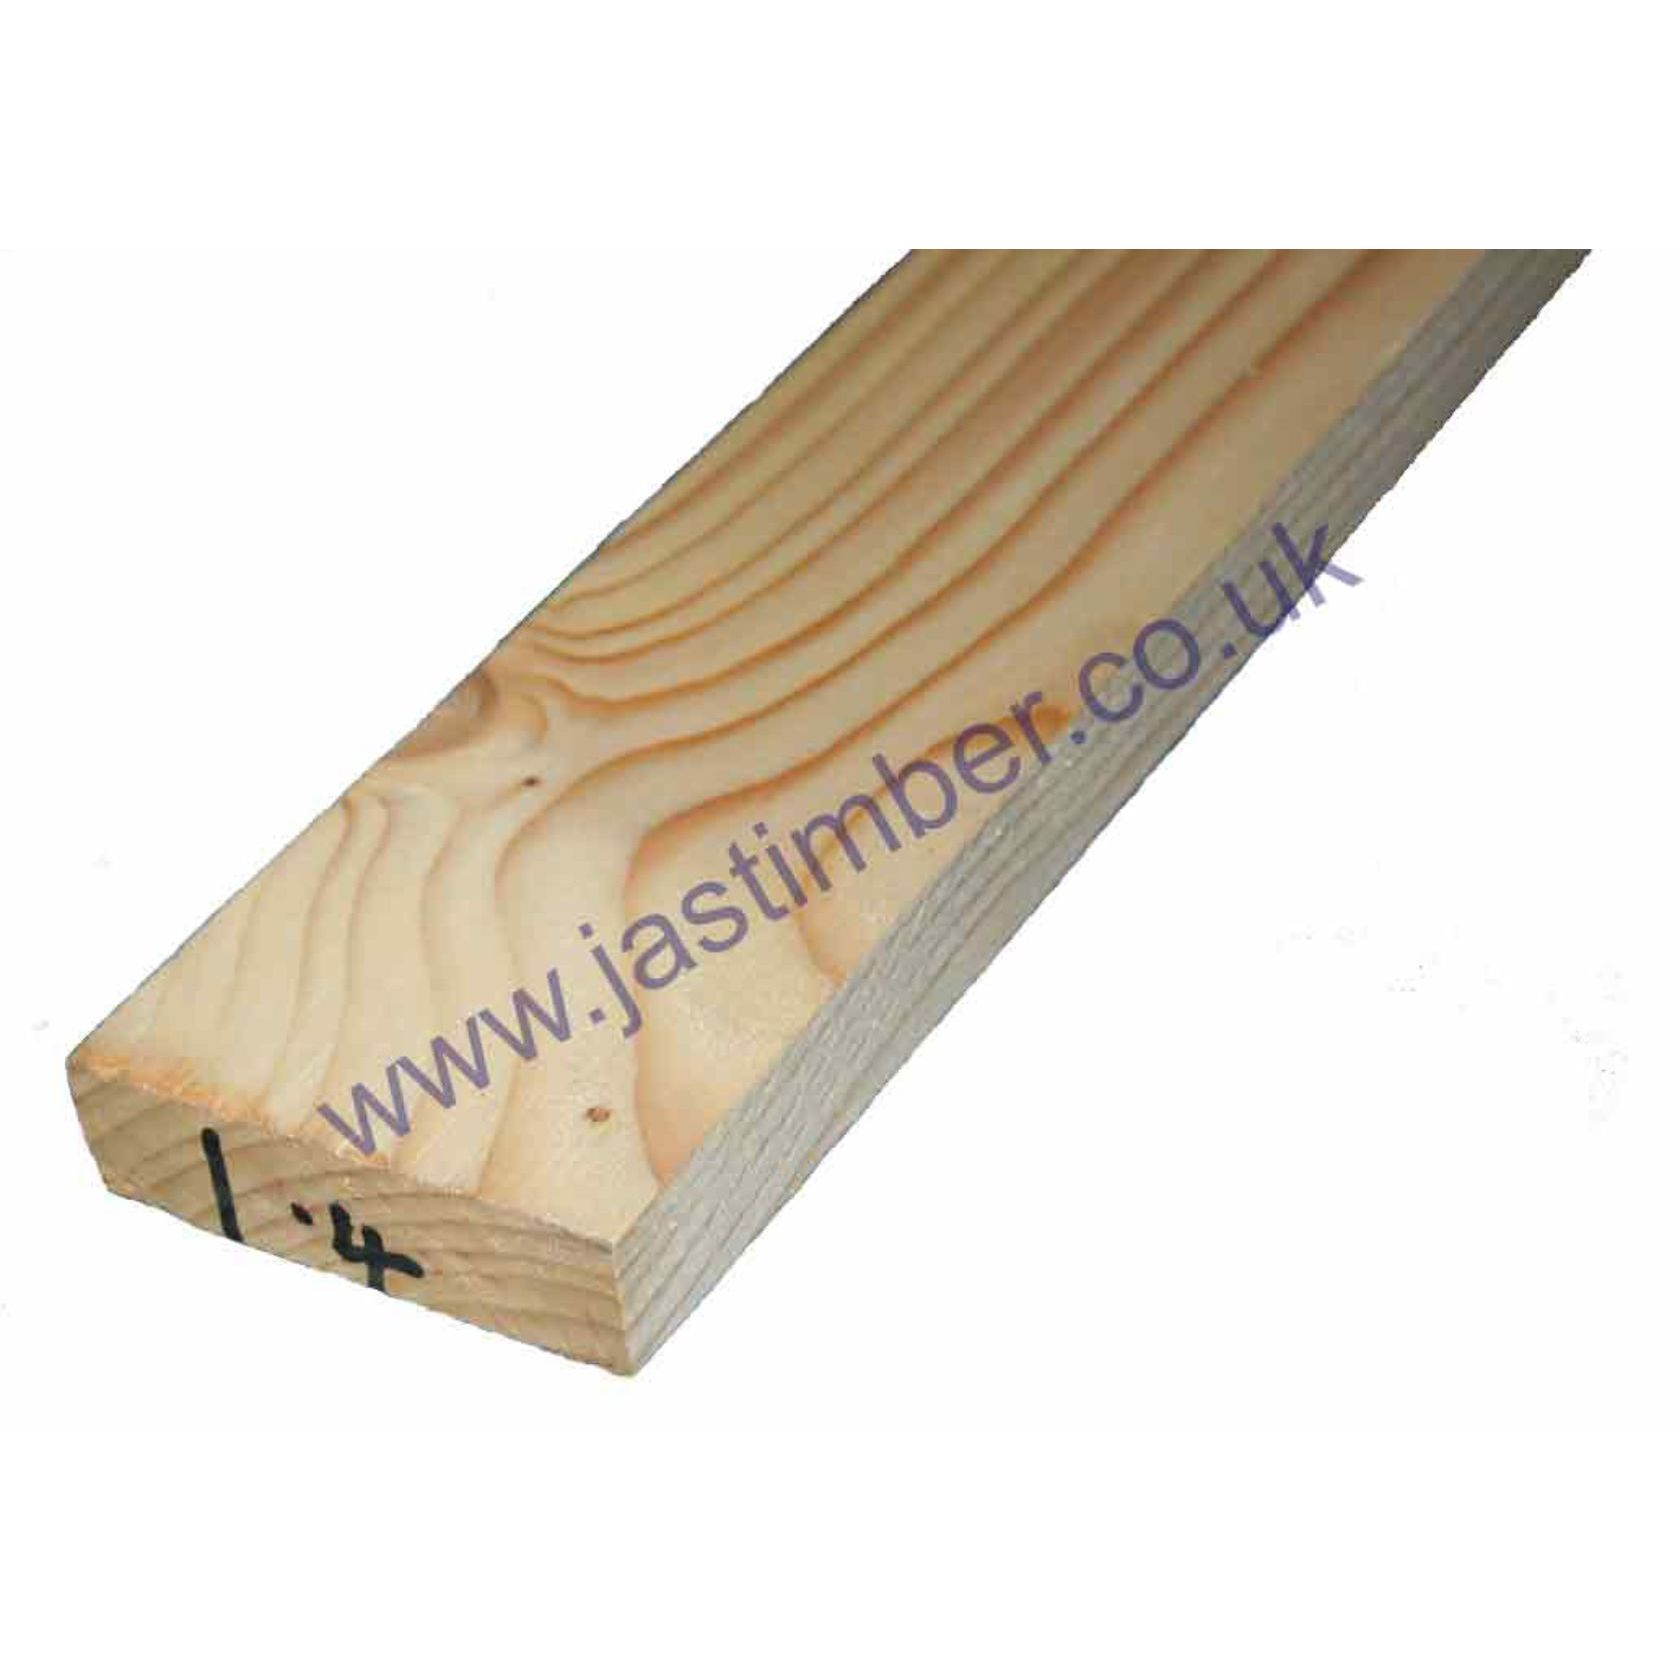 3x1 Planed Whitewood Softwood (ex 22x75mm - Finished: 18x69mm)